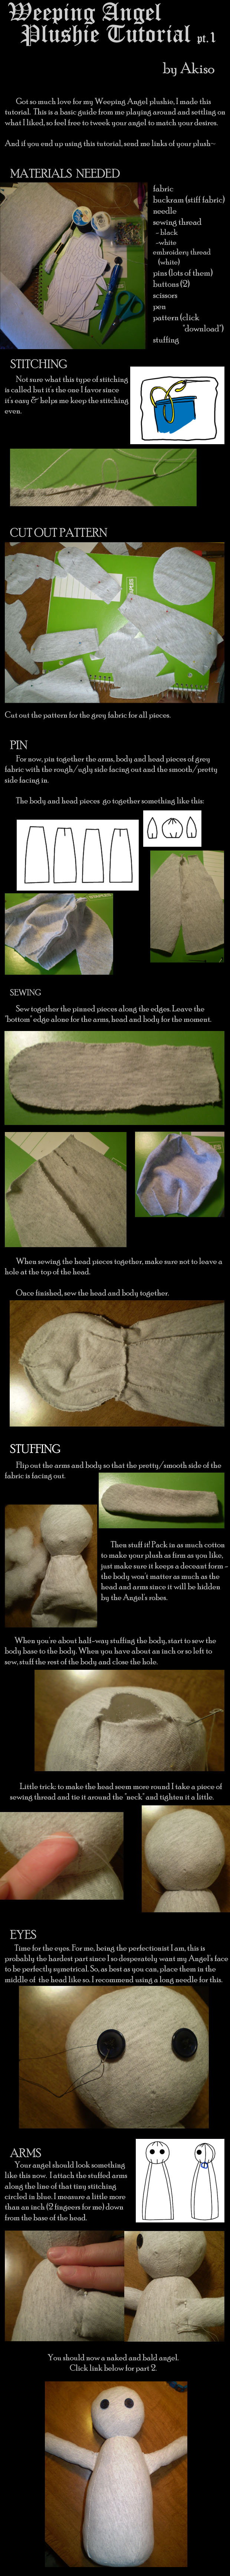 Weeping Angel Plushie Tutorial part 1 by Akiso